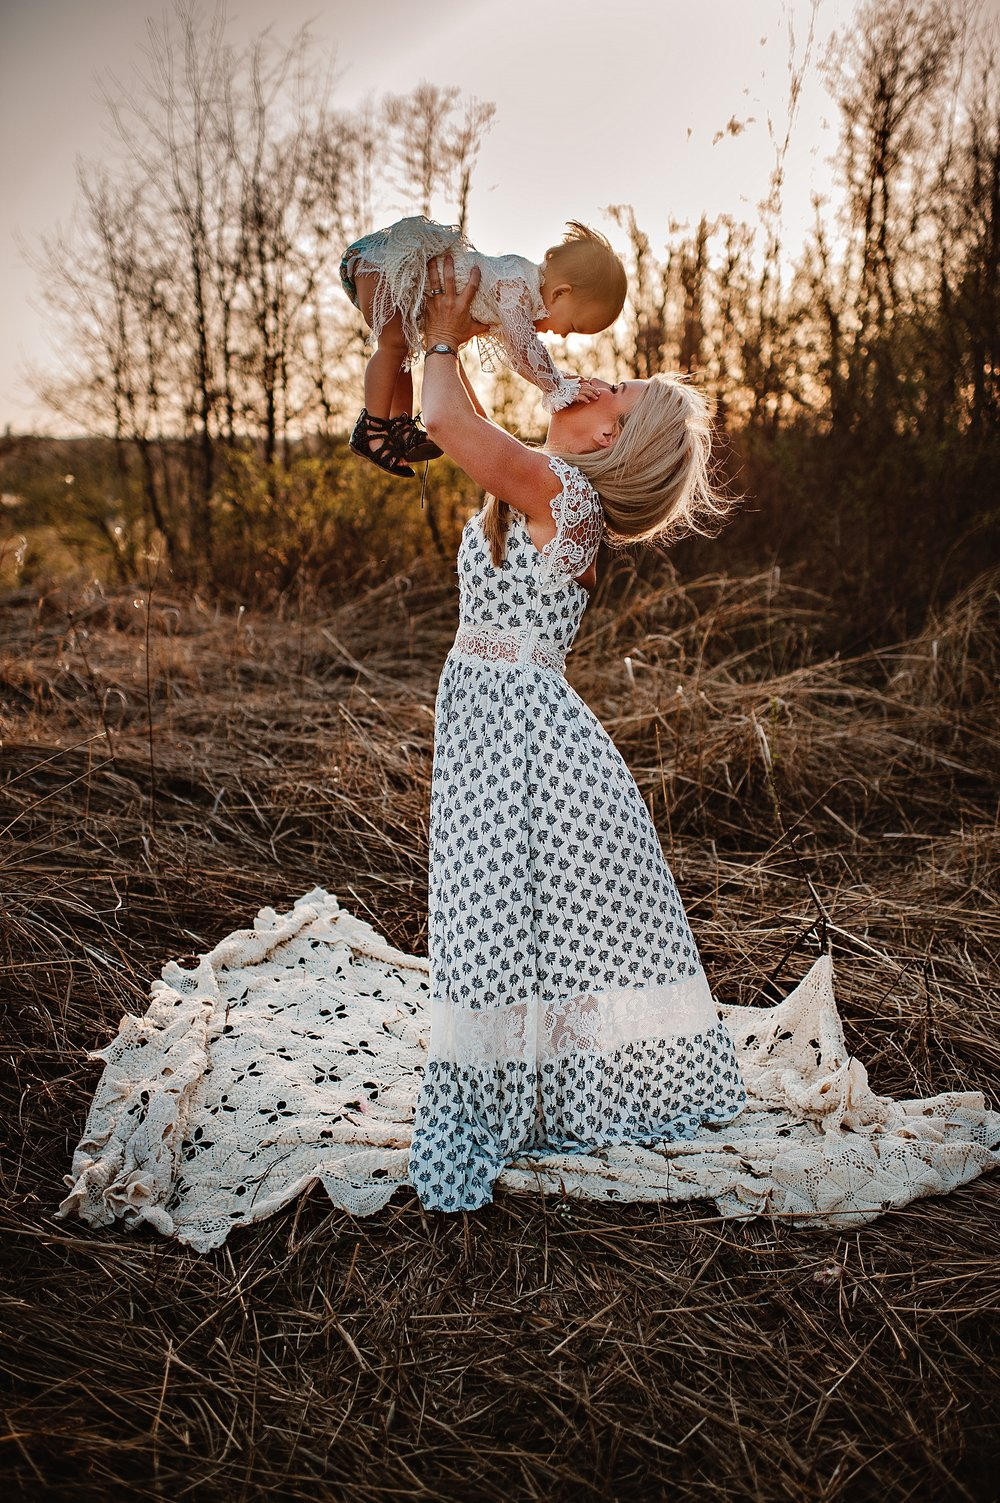 lauren-grayson-photography-portrait-artist-akron-cleveland-ohio-photographer-family-motherhood-fields-sunset-spring-photos-family-child-tallmade-photographer_0271.jpg